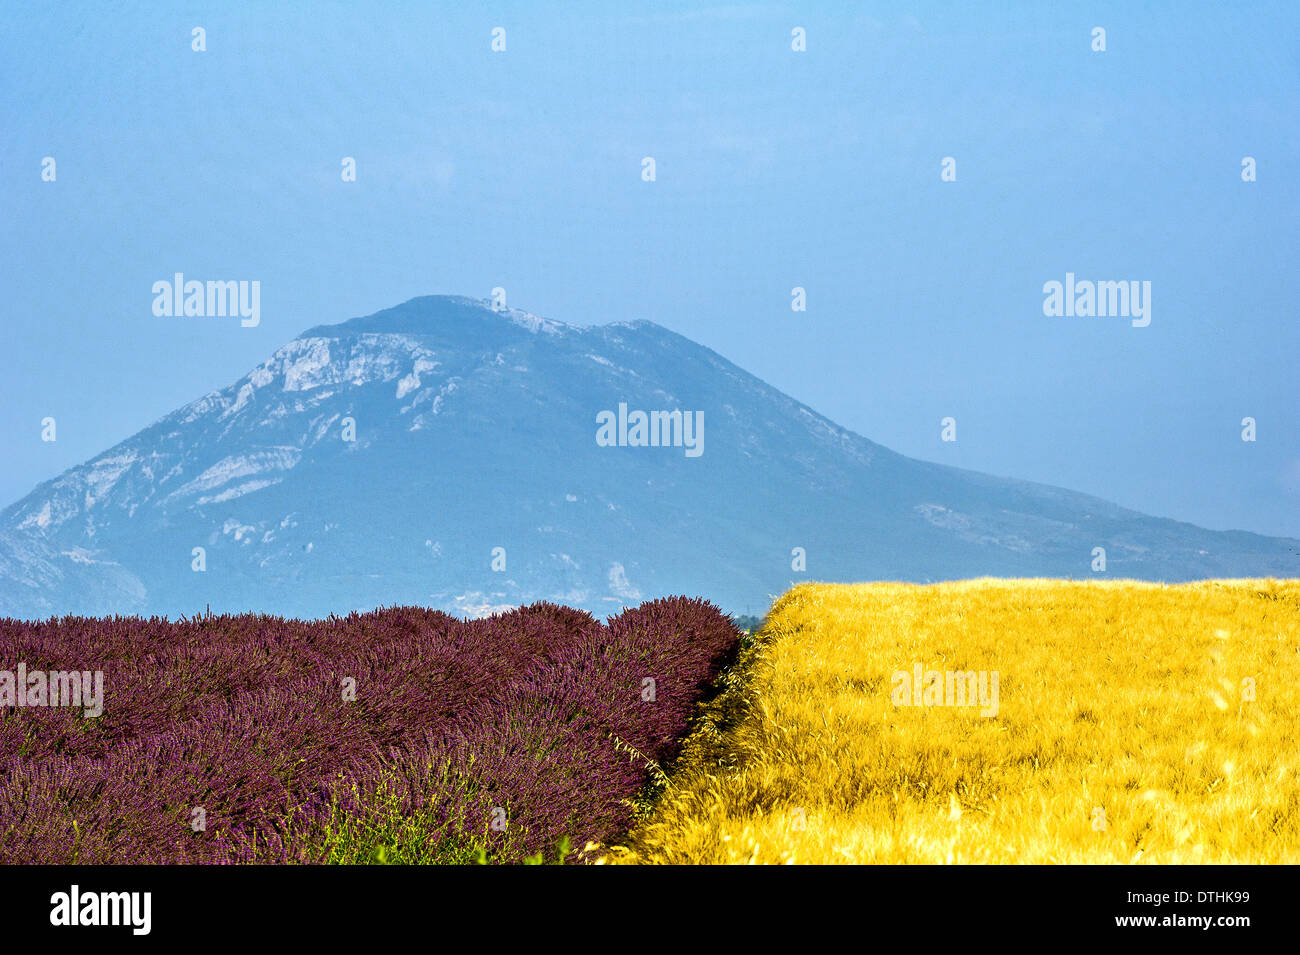 Europe, France, Alpes-de-Haute-Provence, 04, Regional Natural Park of Verdon, Valensole. Field of lavender and wheat. - Stock Image